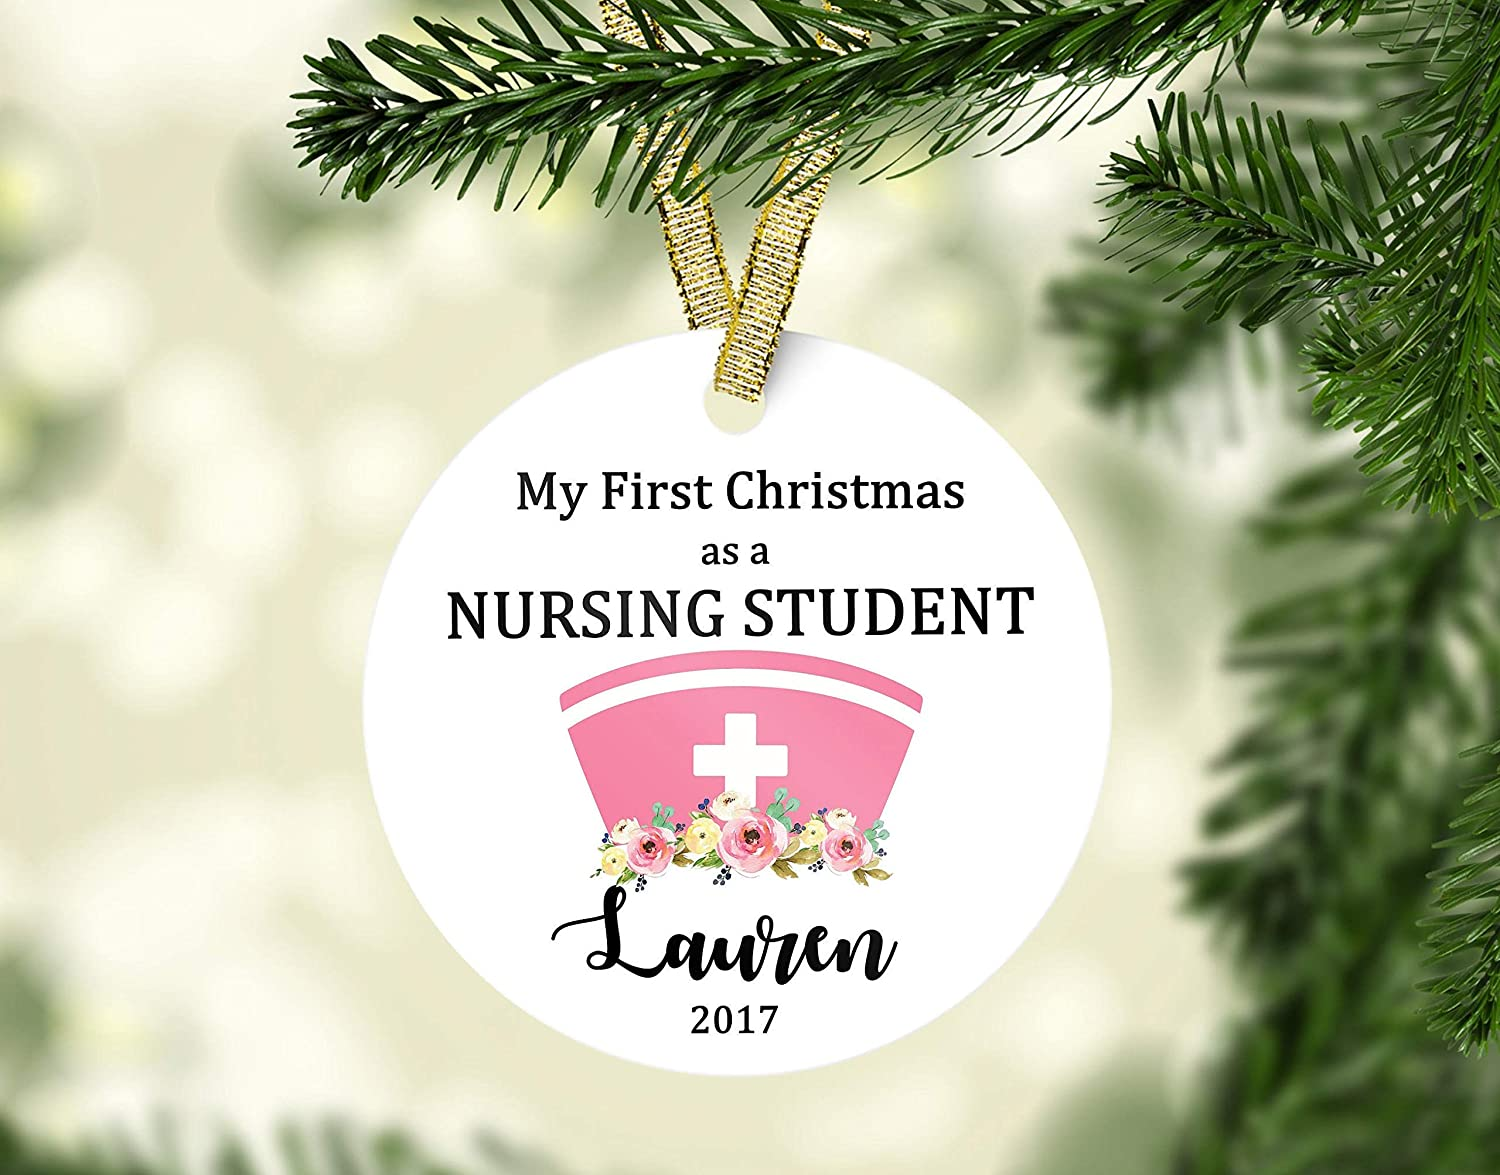 Amazon.com: Fhdang Decor My First Christmas as a Nursing Student ...